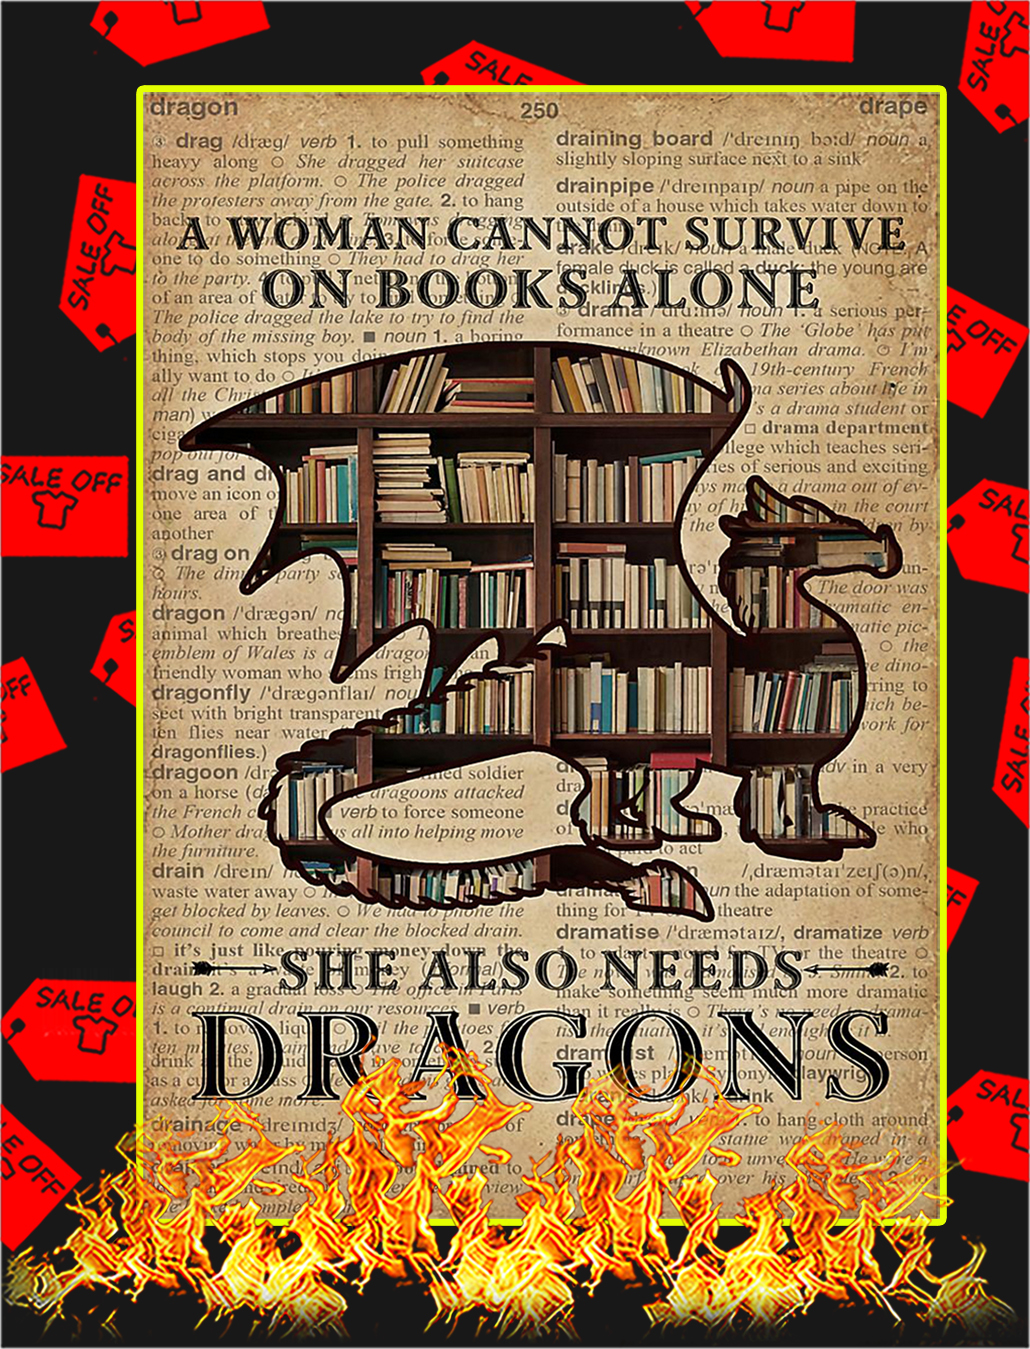 A woman cannot survive on books alone she also needs dragons poster - A2